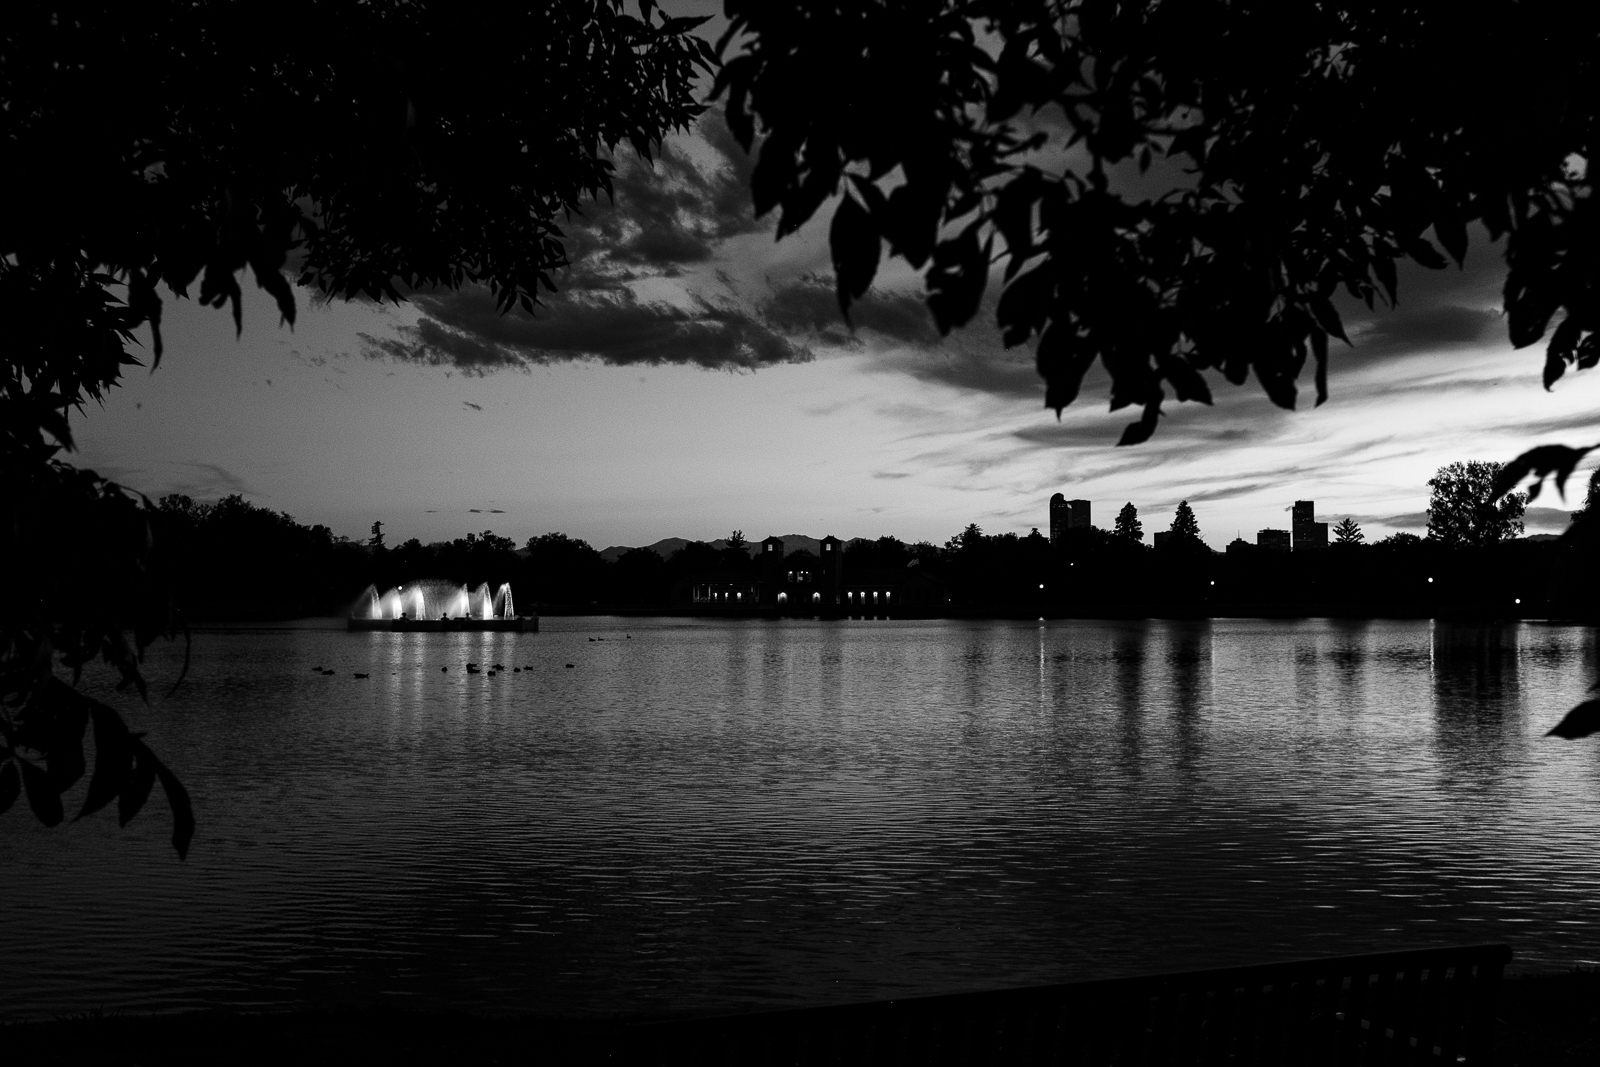 Day 163- 365 Day B&W Photo Challenge - Sunset at City Park in Denver, Colorado. - Fuji X100F, Acros Film Simulation